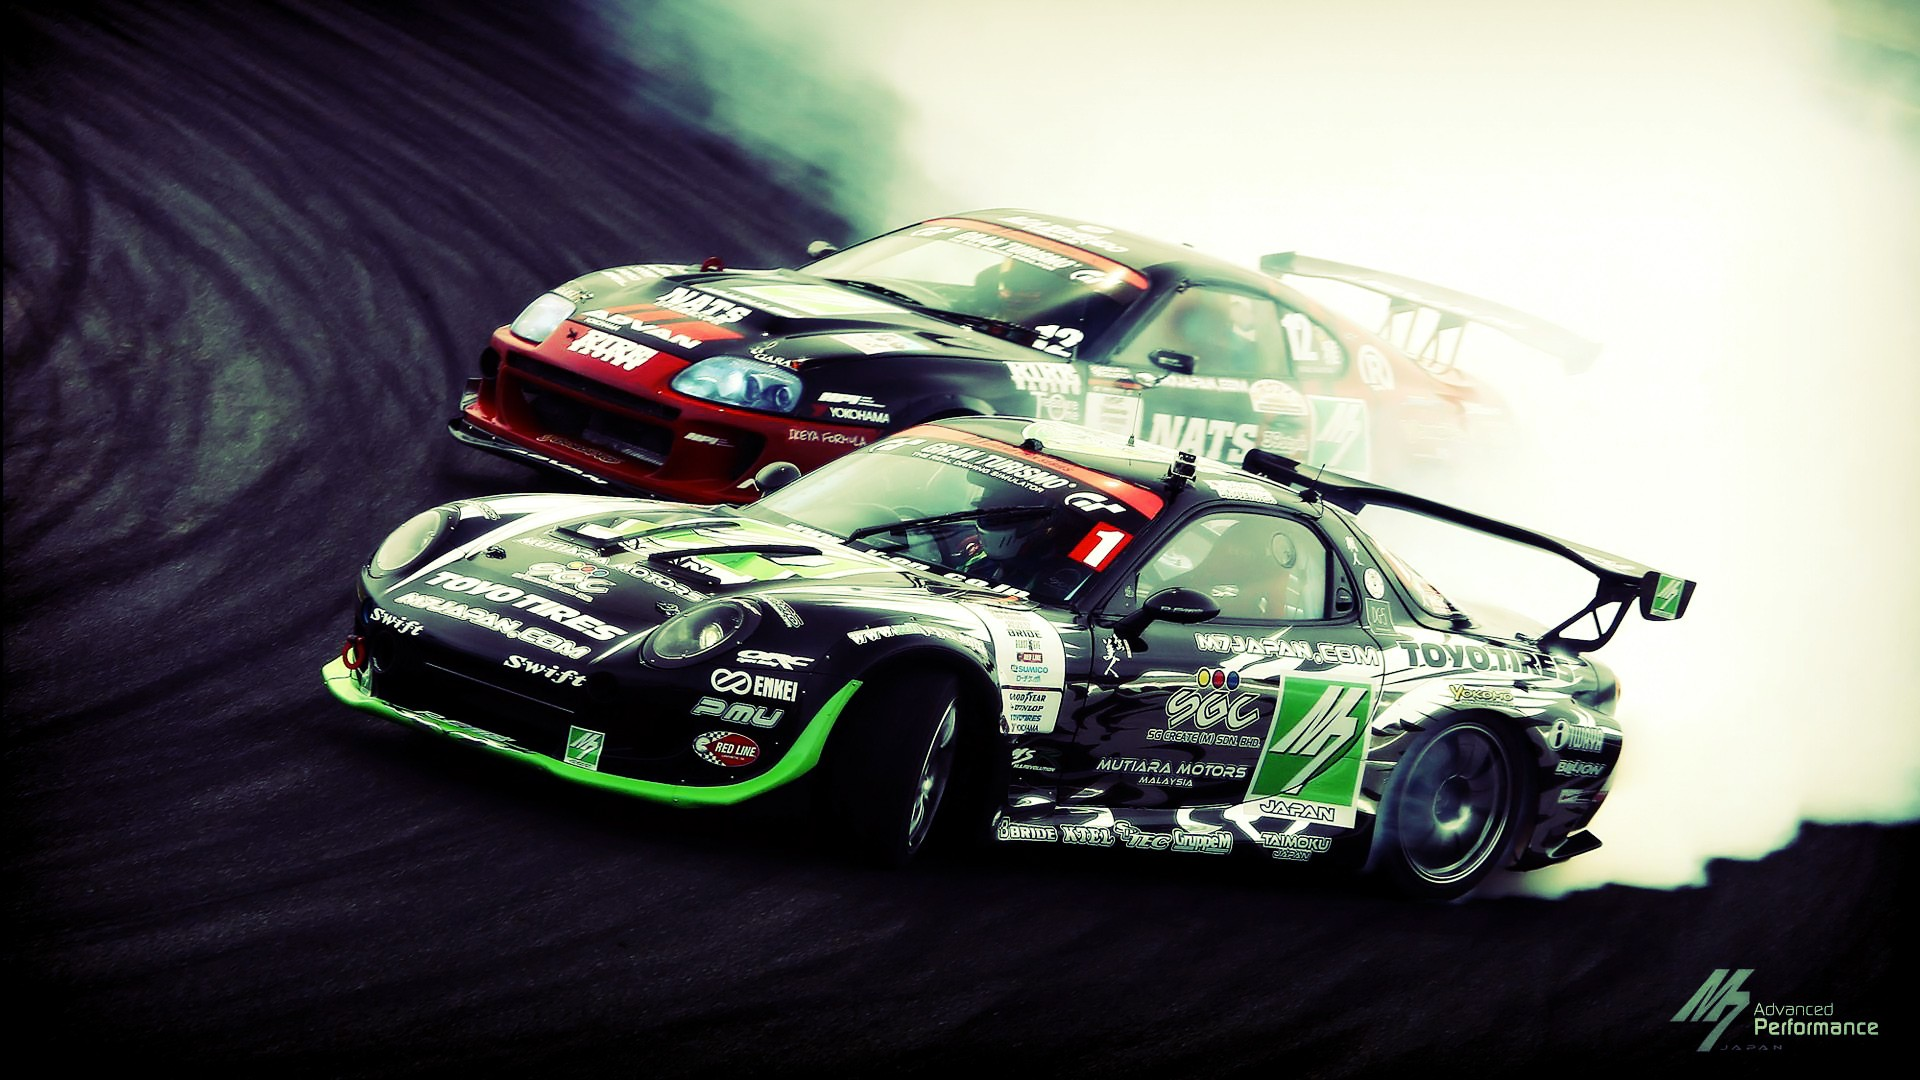 Supra Vs RX7 Drift Wallpapers Supra Vs RX7 Drift Myspace Backgrounds  1920x1080